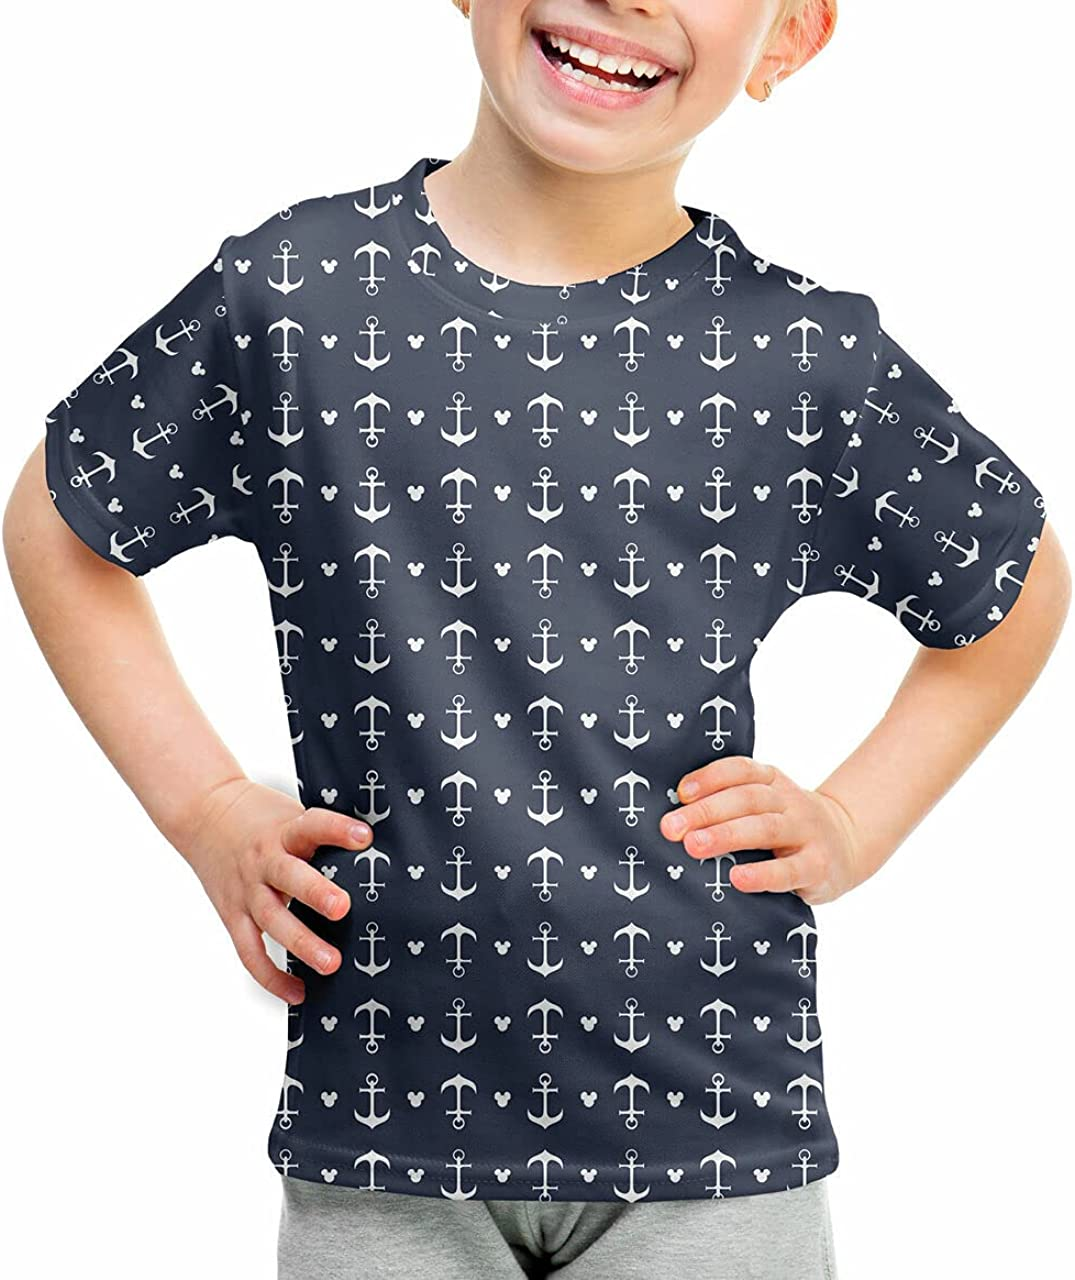 Youth Cotton Blend T-Shirt Ears - Mouse Anchors Choice Soldering